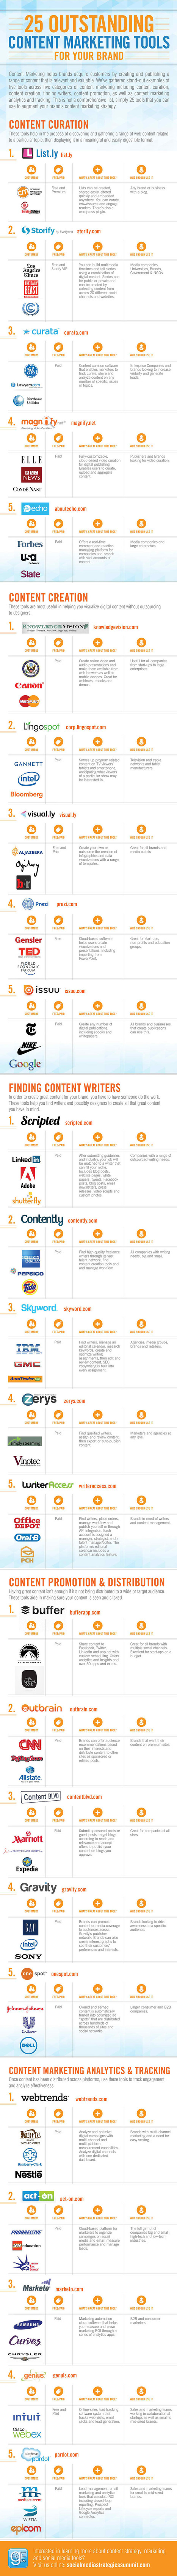 Interesting Infographics: 25 Tools To Boost Your Content Strategy | CustomerThink | Content Marketing | Scoop.it